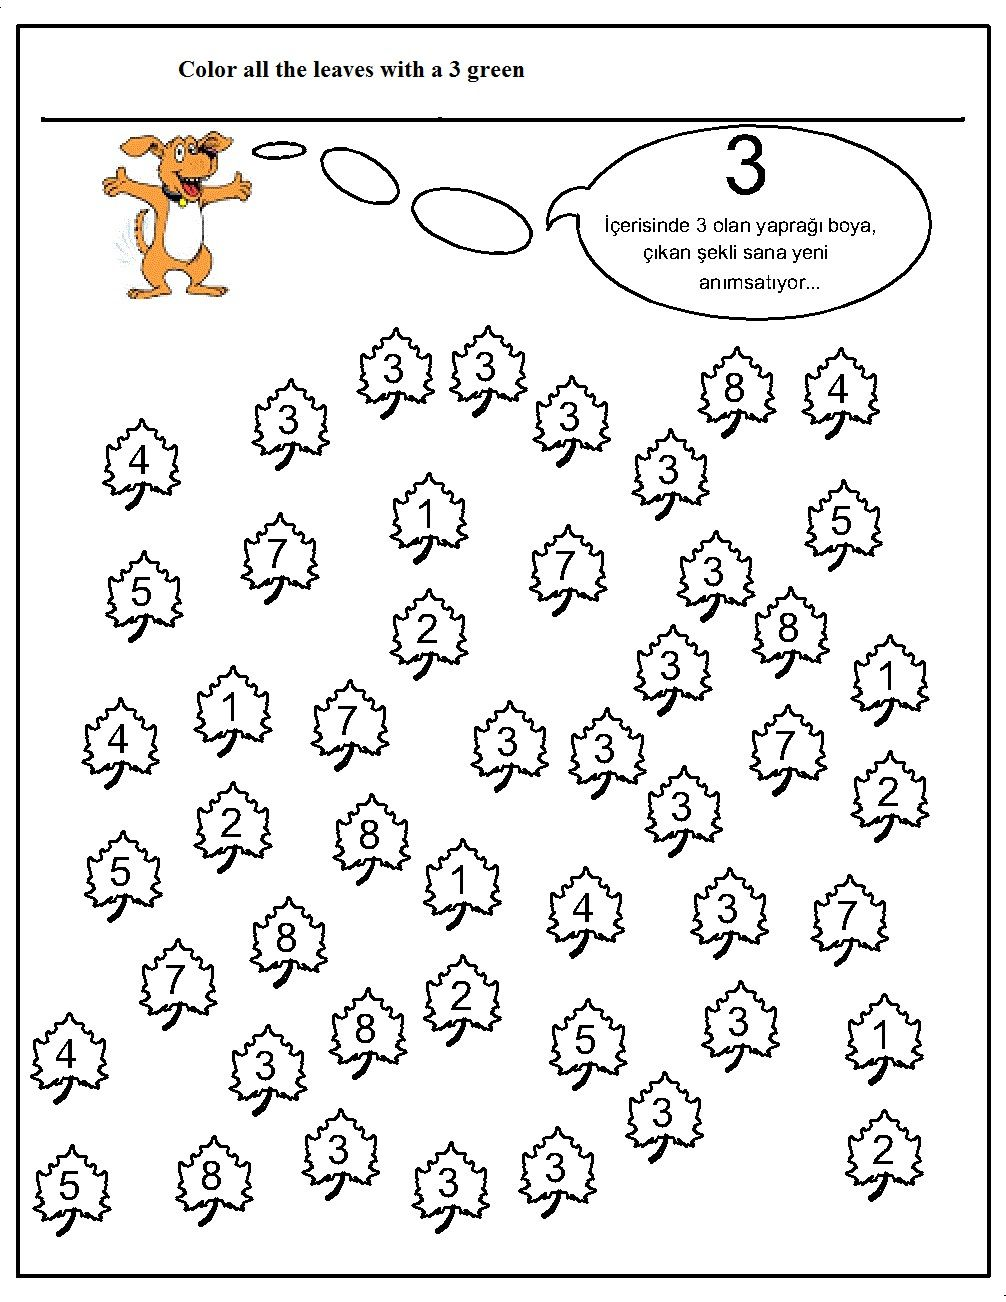 Workbooks shark worksheets for kids : number hunt worksheet for kids (11) | Crafts and Worksheets for ...